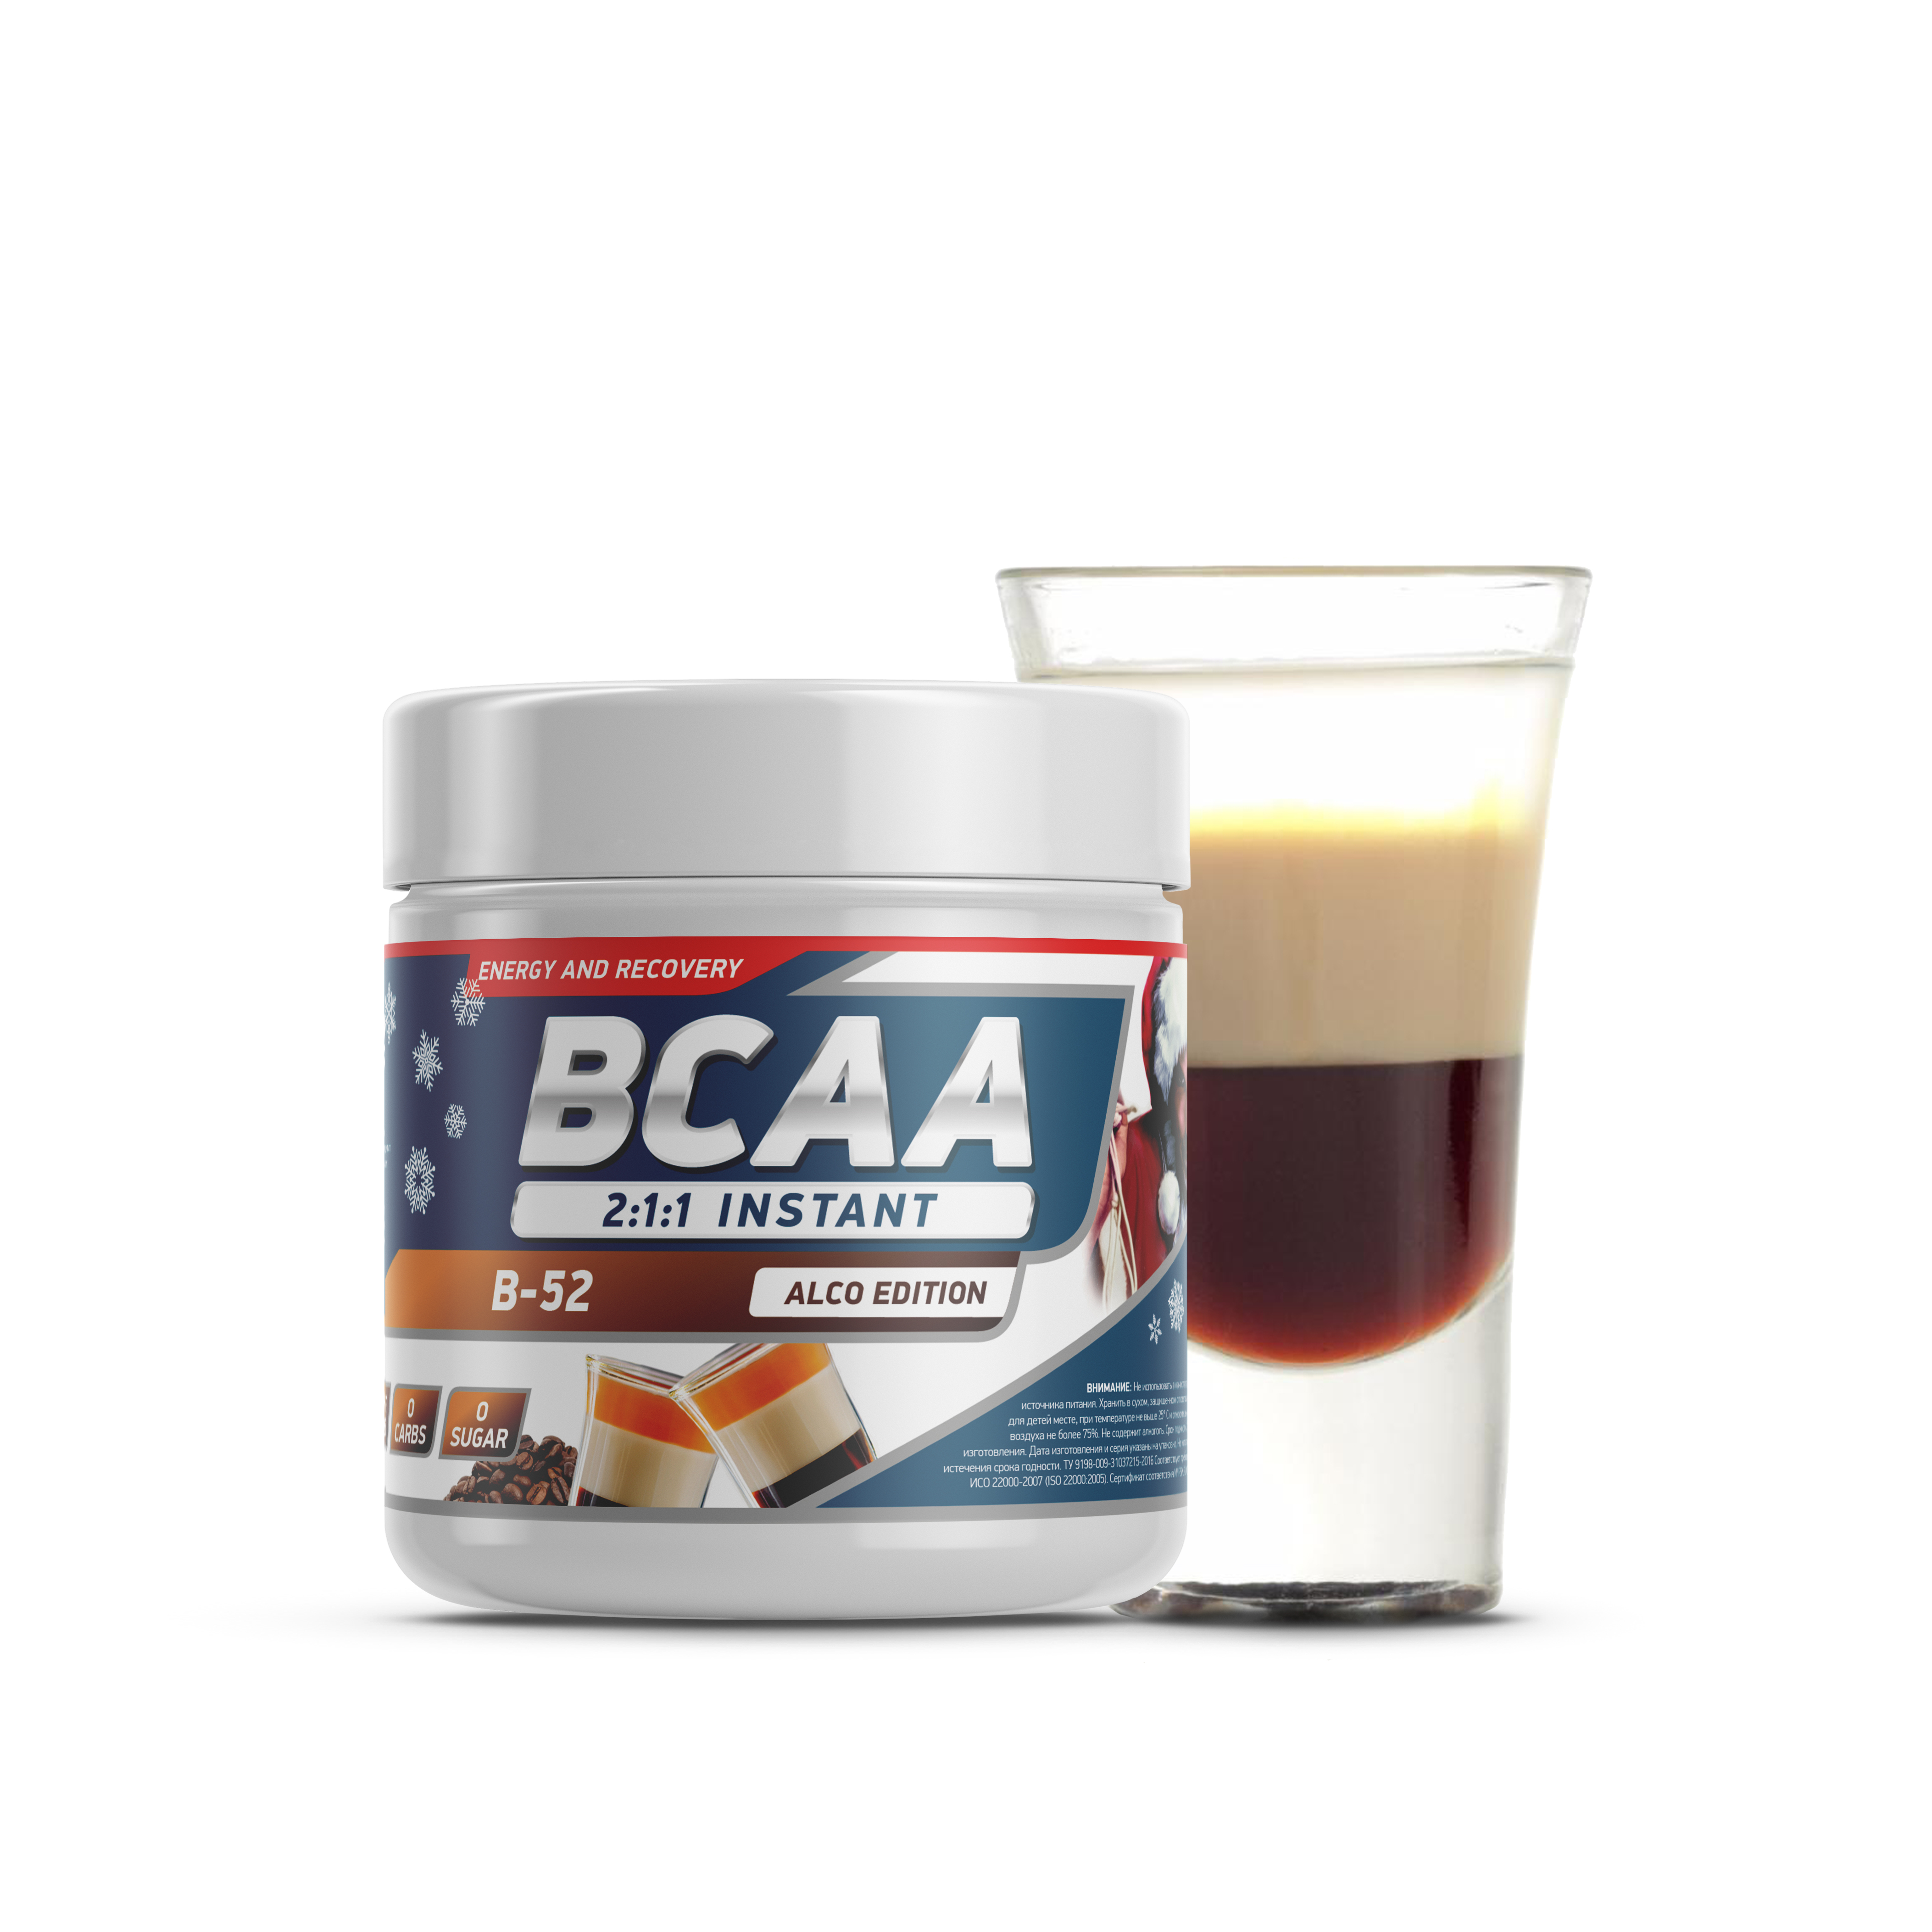 Geneticlab BCAA 2:1:1 ALCO EDITION